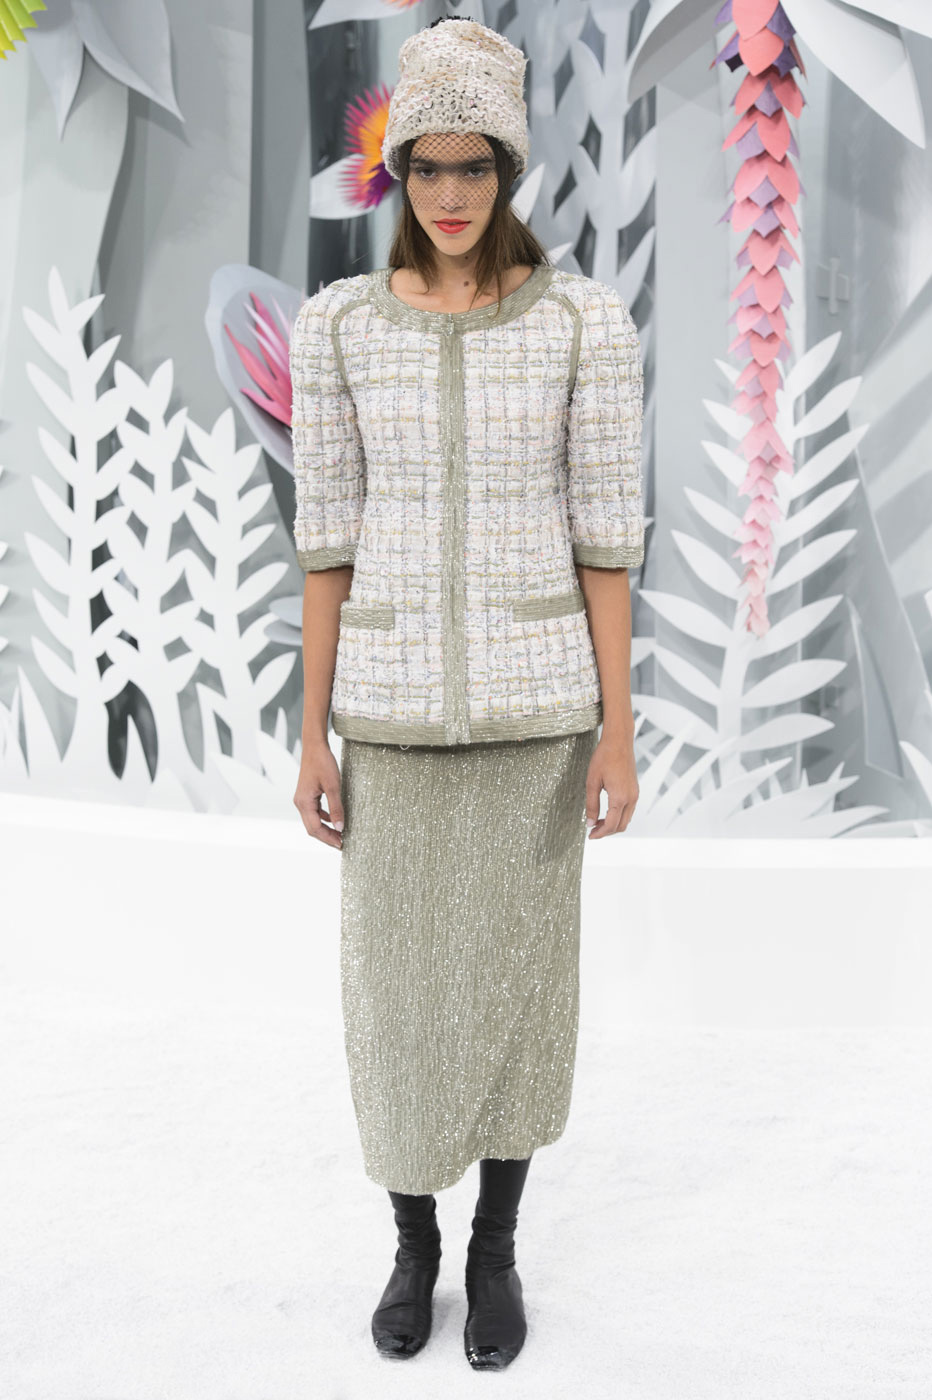 Chanel-fashion-runway-show-haute-couture-paris-spring-summer-2015-the-impression-056